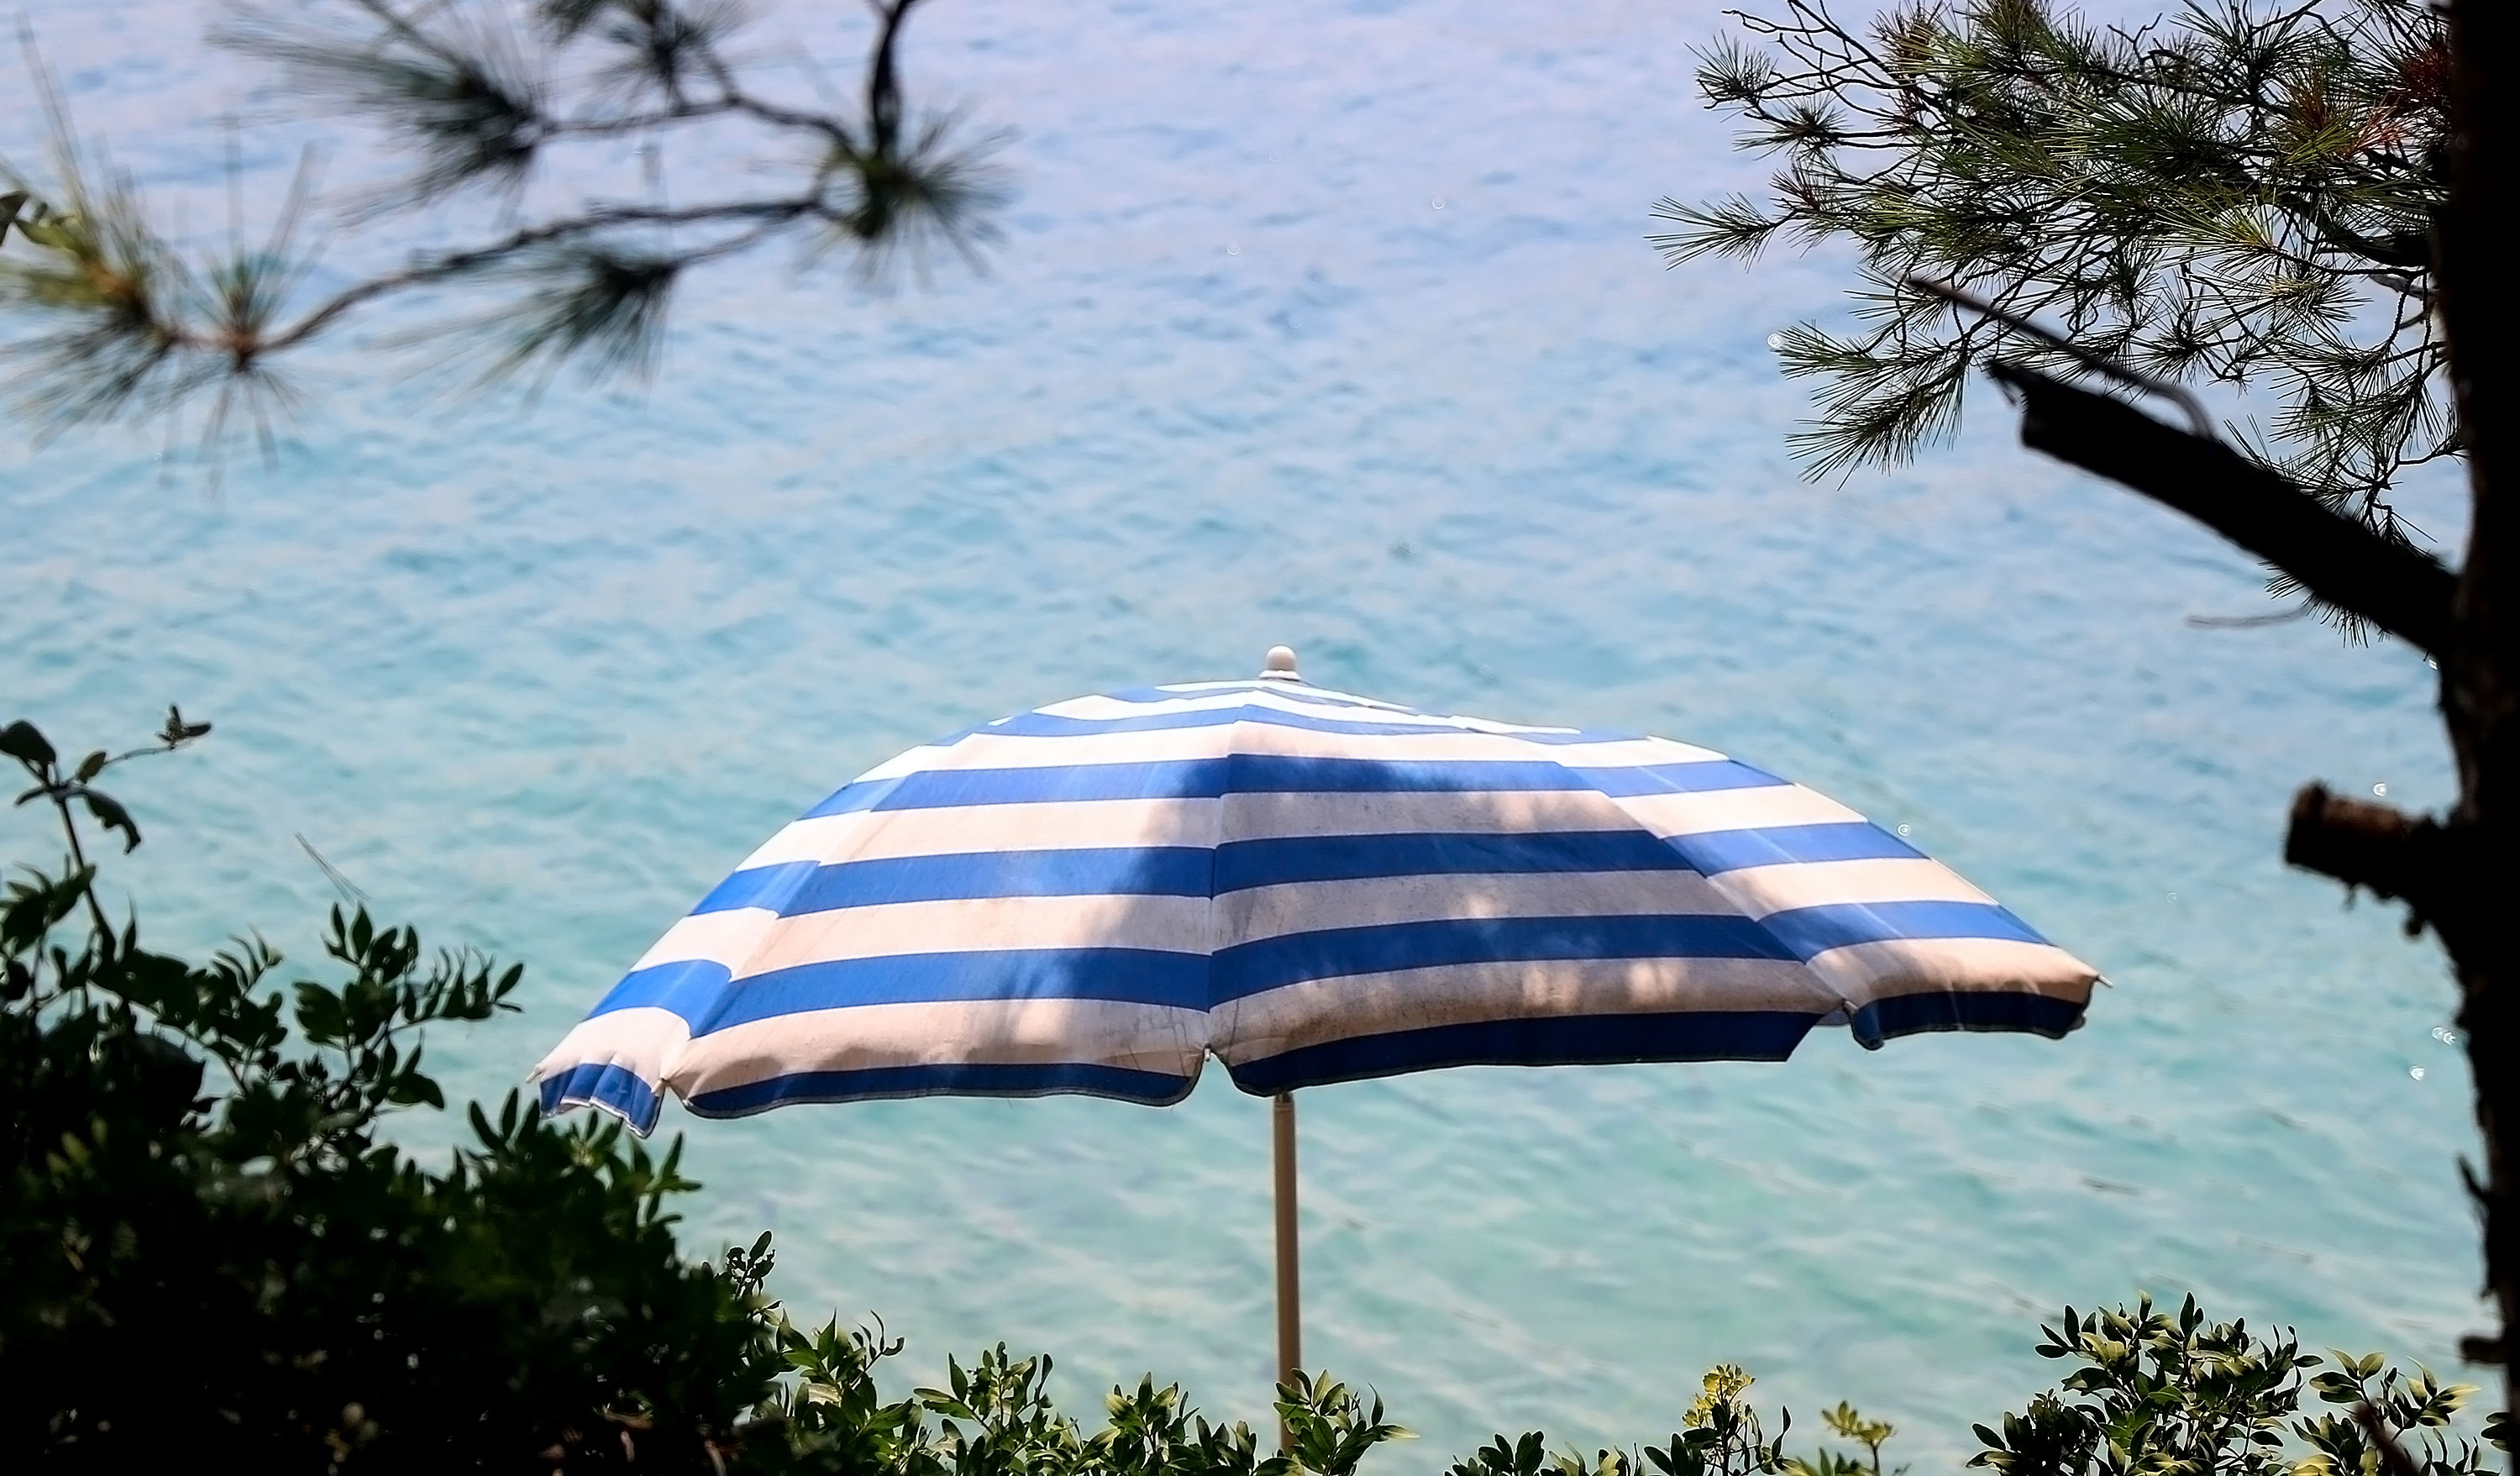 Striped umbrella at beach.